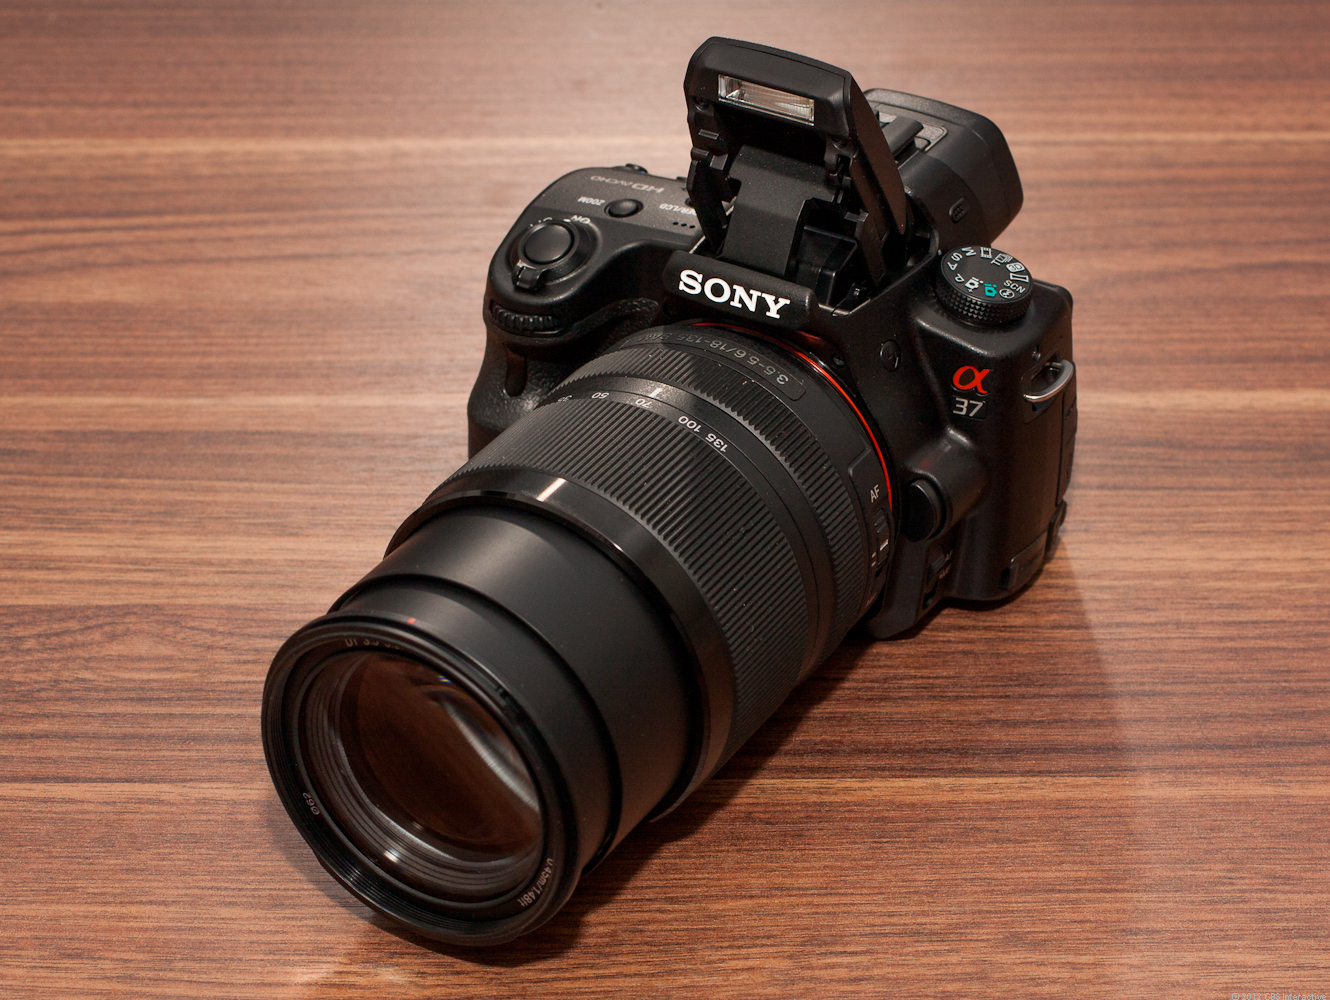 Sony Alpha A37 (with 18-55mm lens)